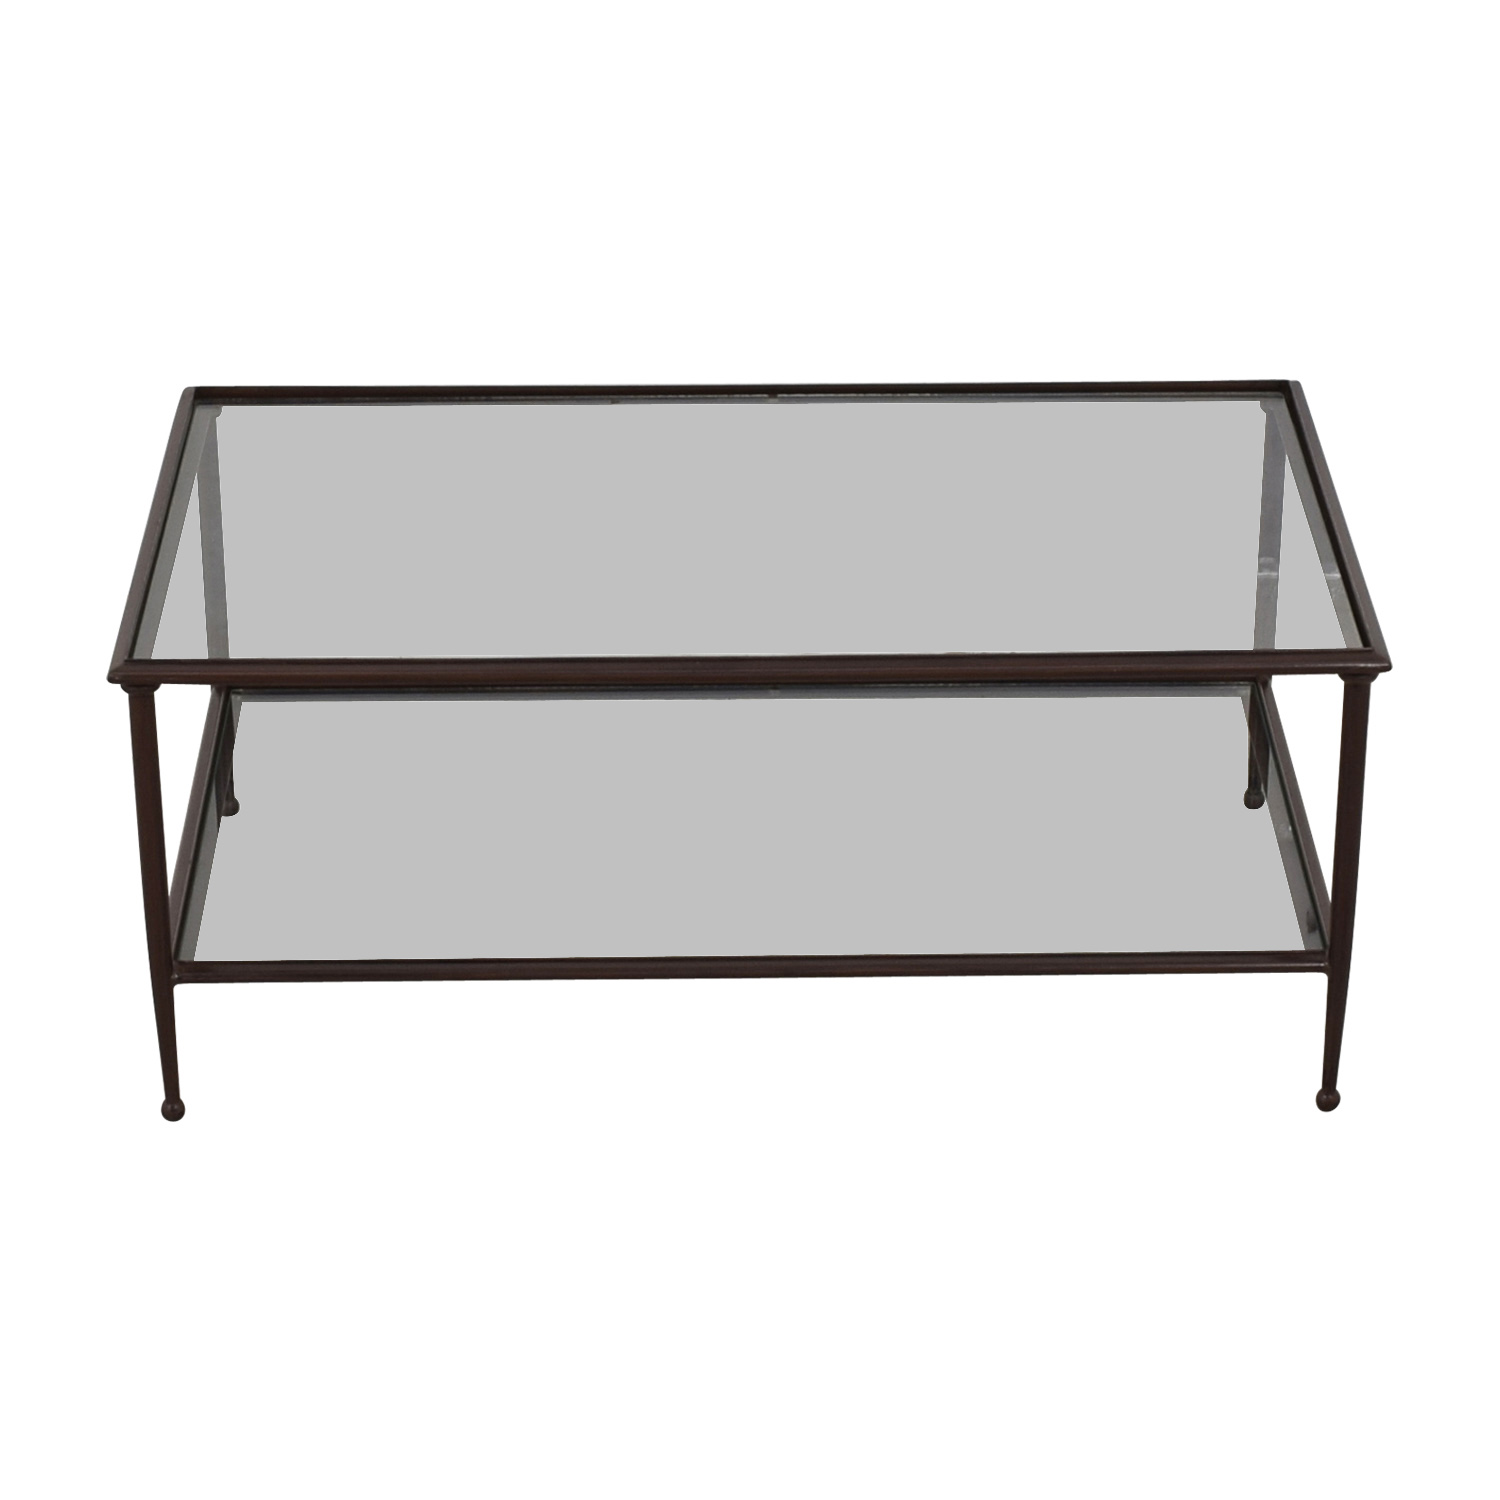 Crate & Barrel Crate & Barrel Glass Coffee Table for sale